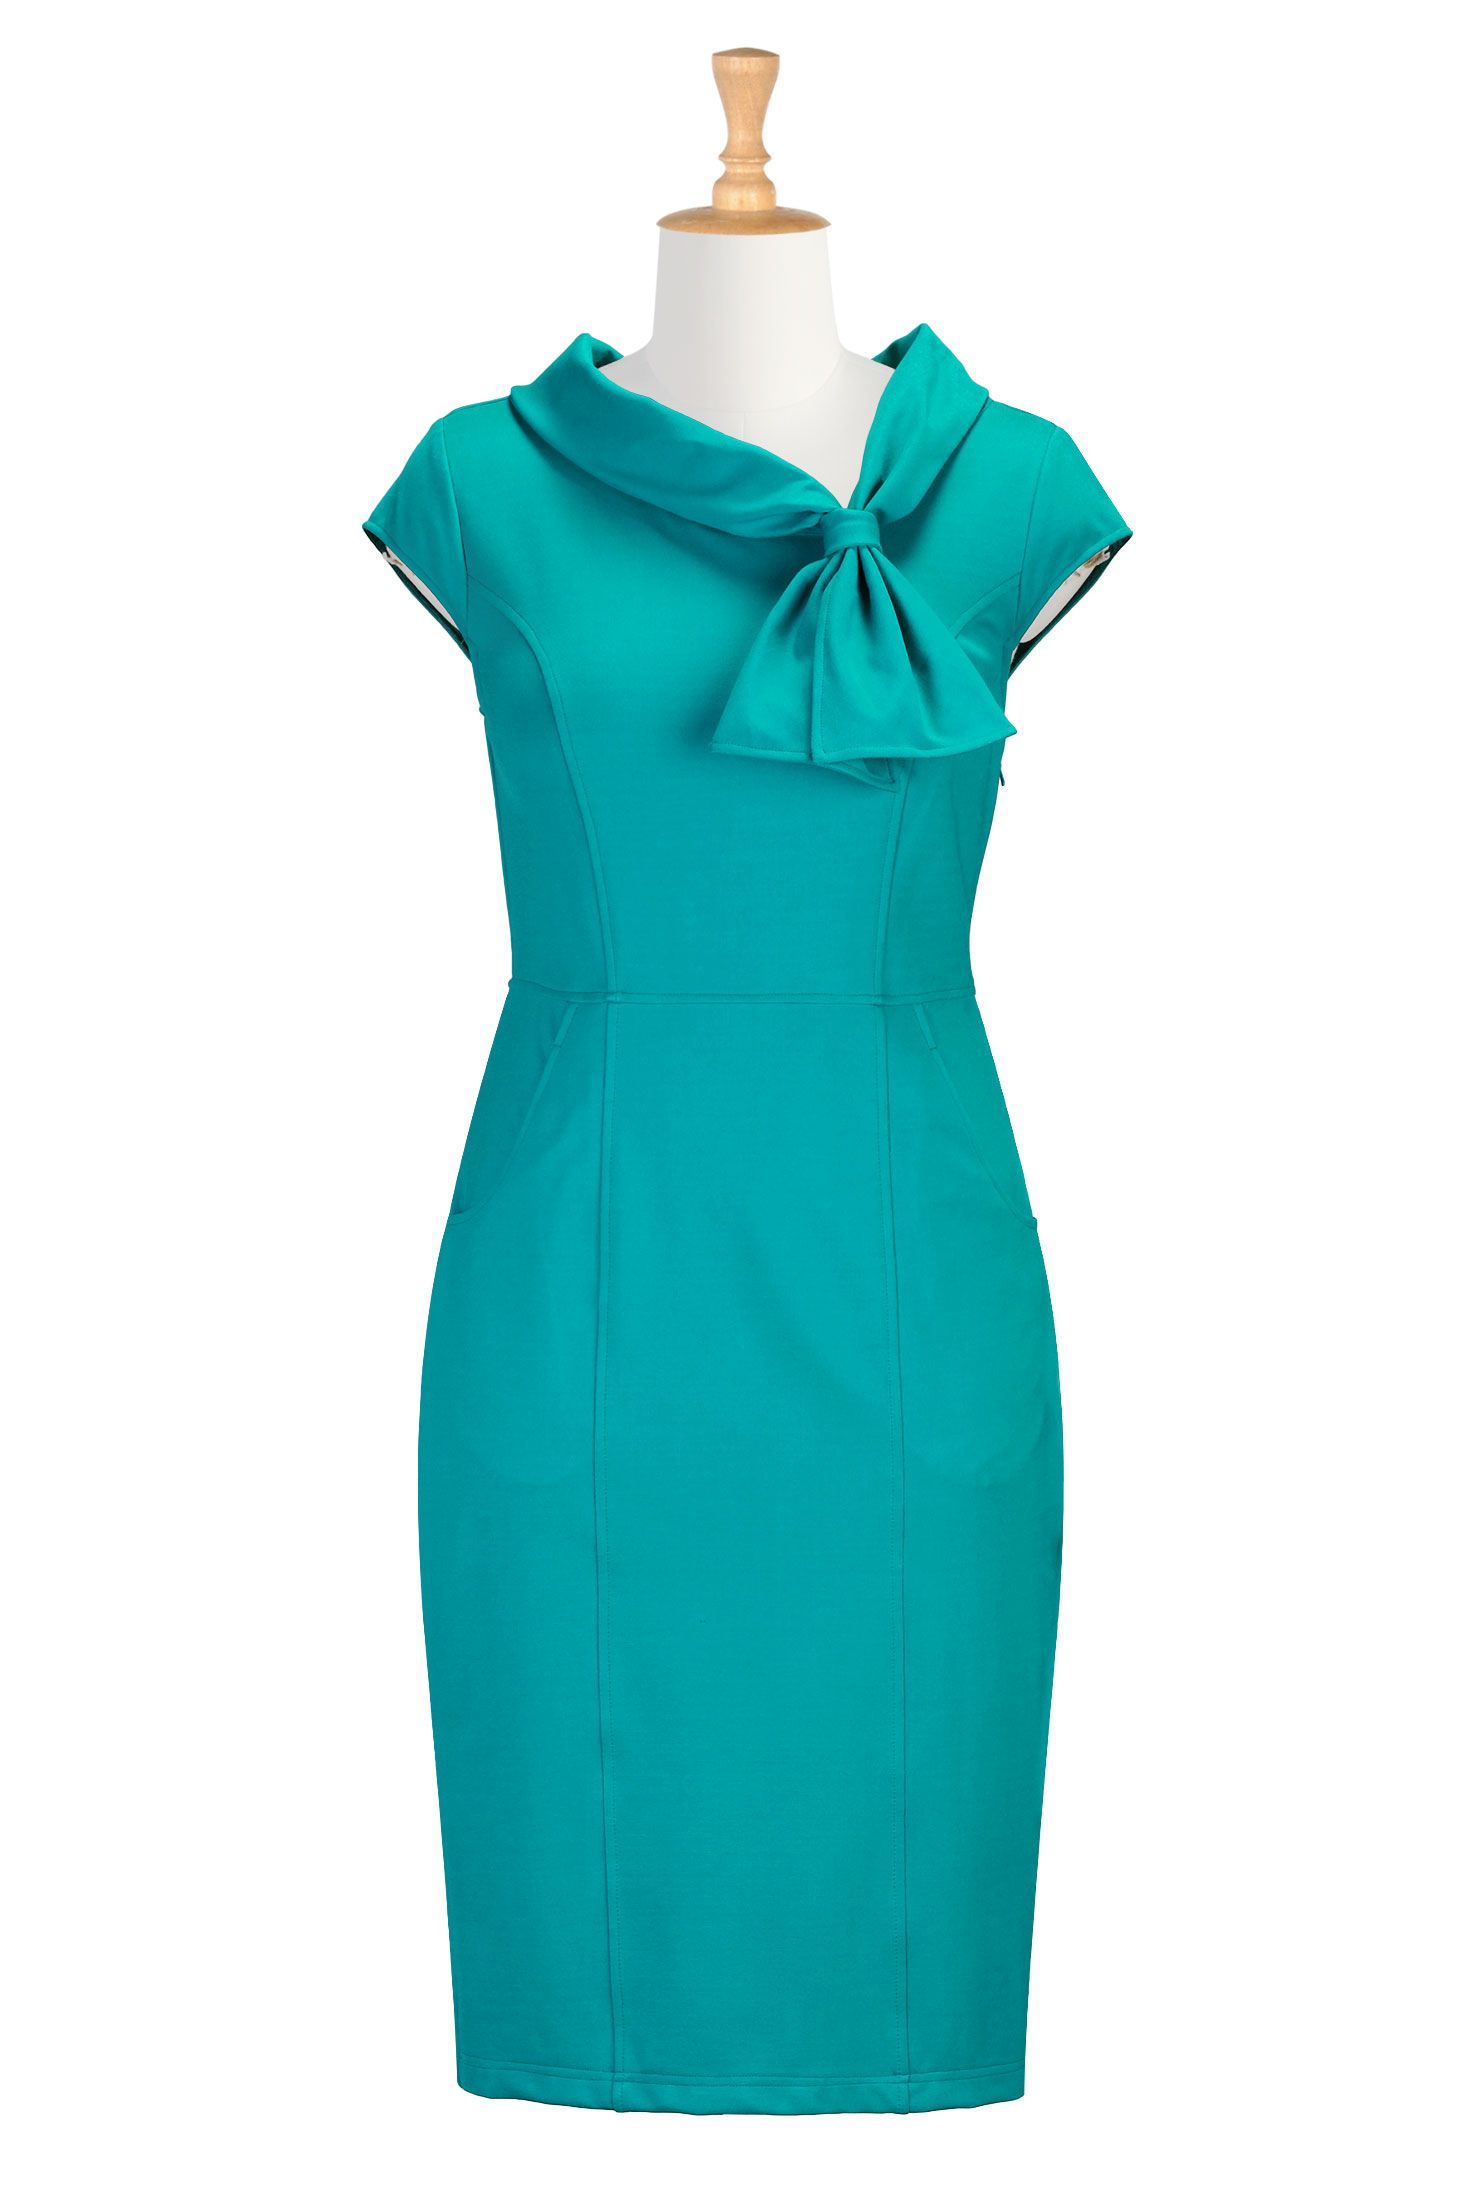 Cowl collar with ties ponte dress | Retro dress, Fashion clothes and ...